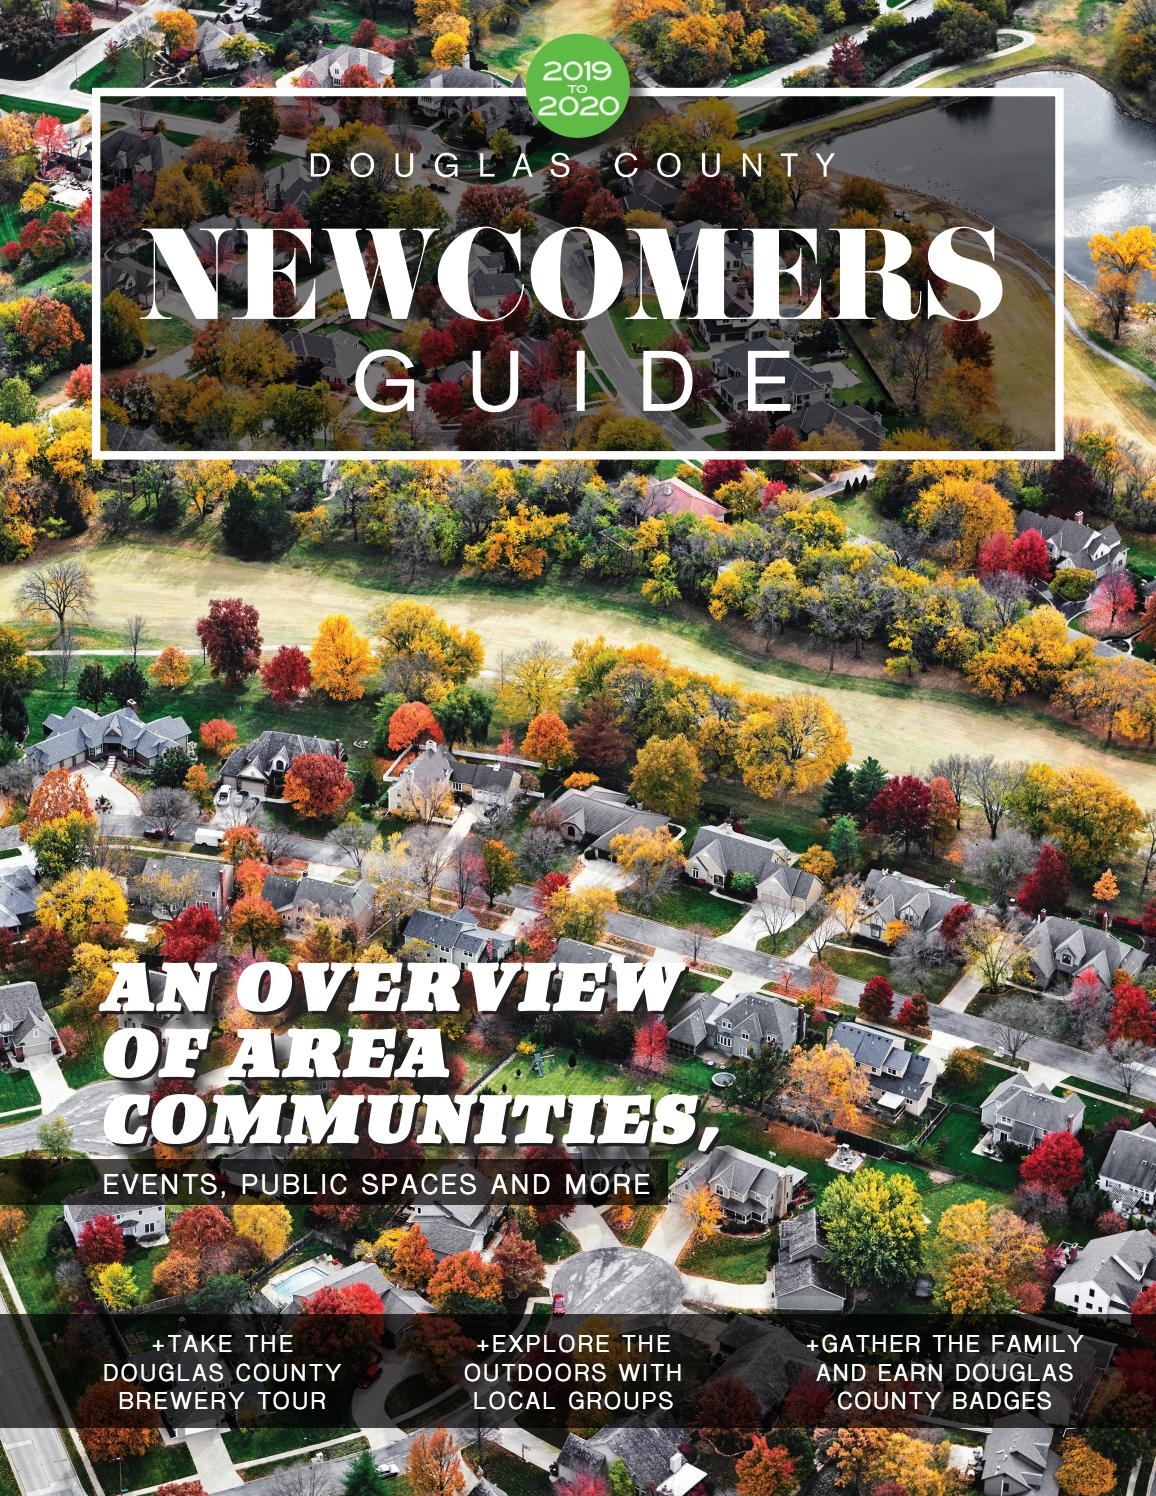 Douglas County (KS) Newcomers Guide 2019-2020 by Sunflower